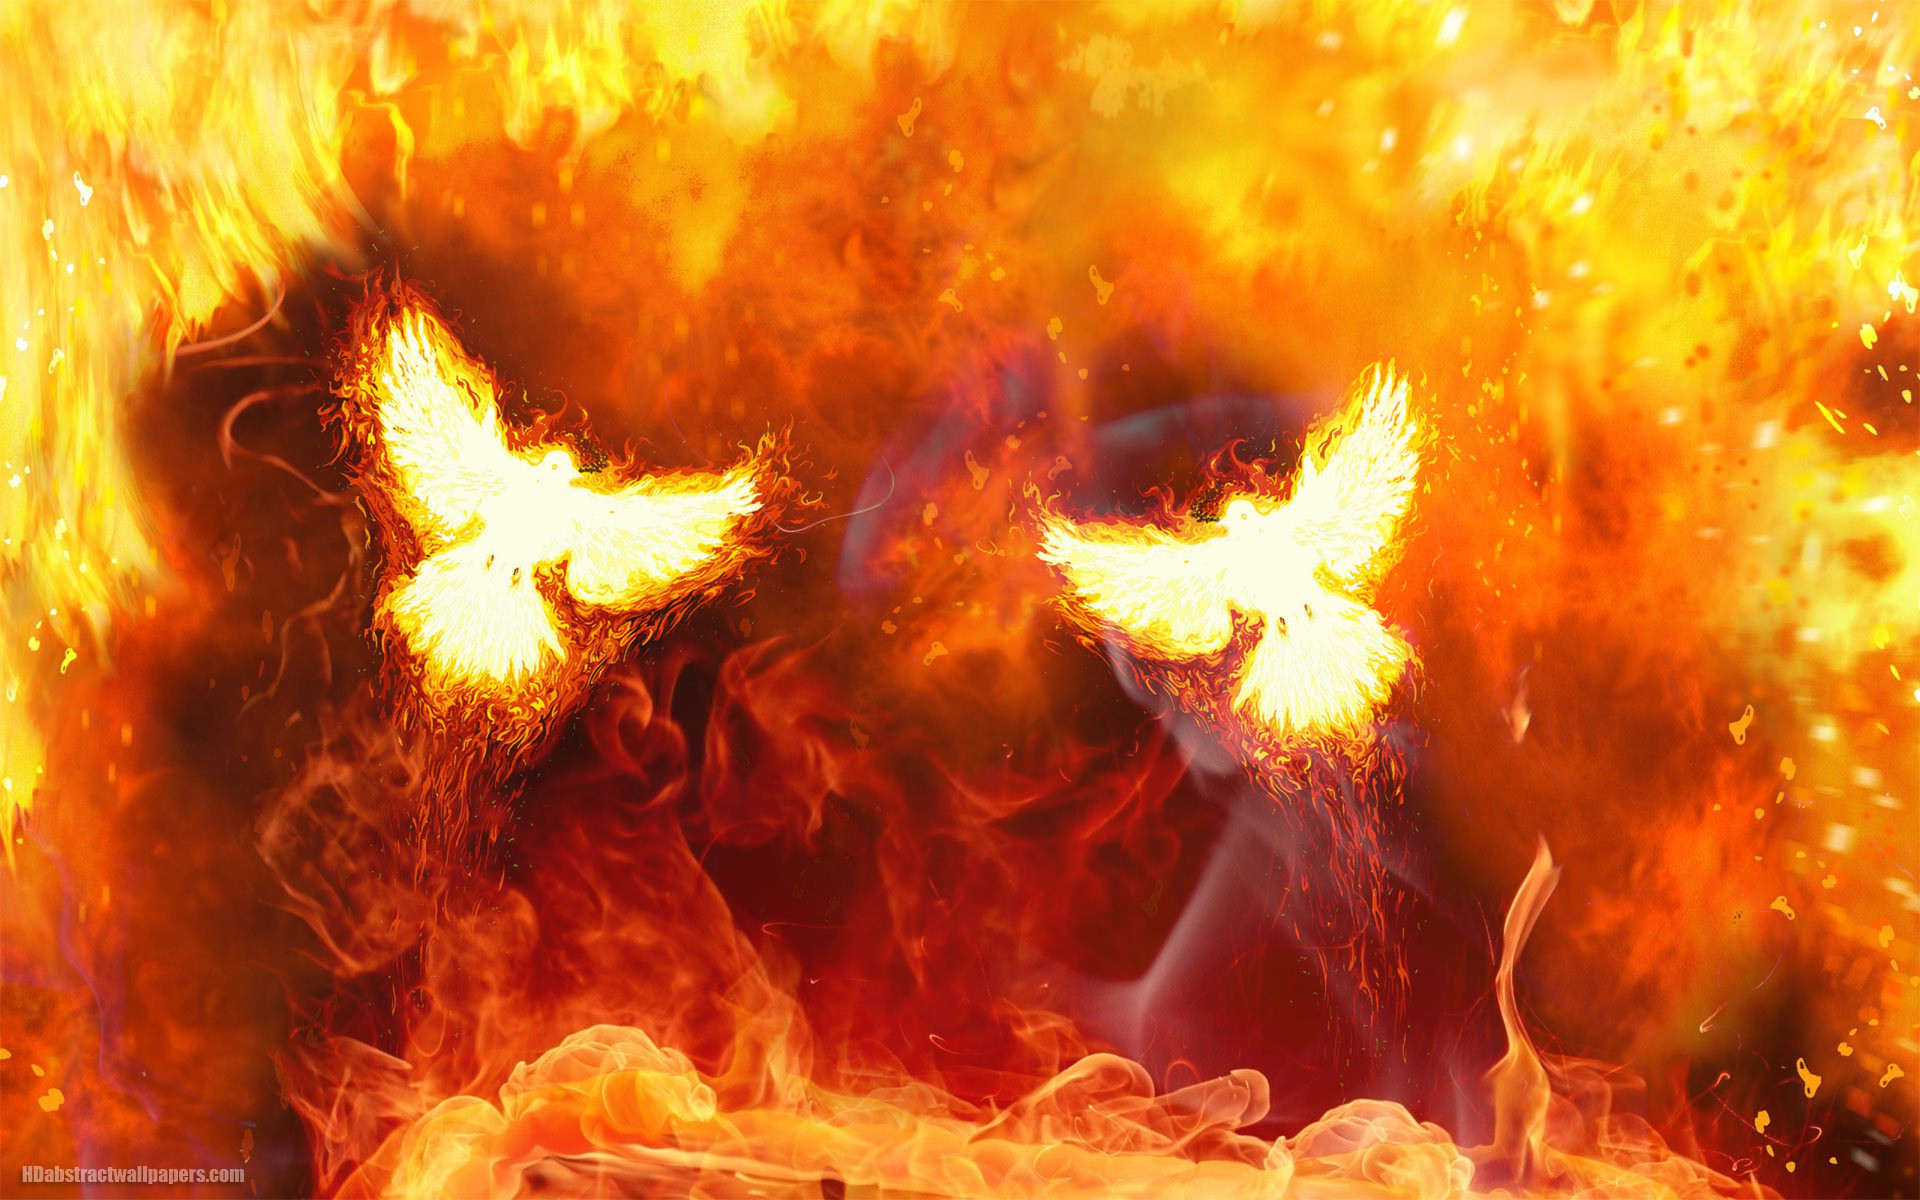 Fire Background Hd Download , HD Wallpaper & Backgrounds